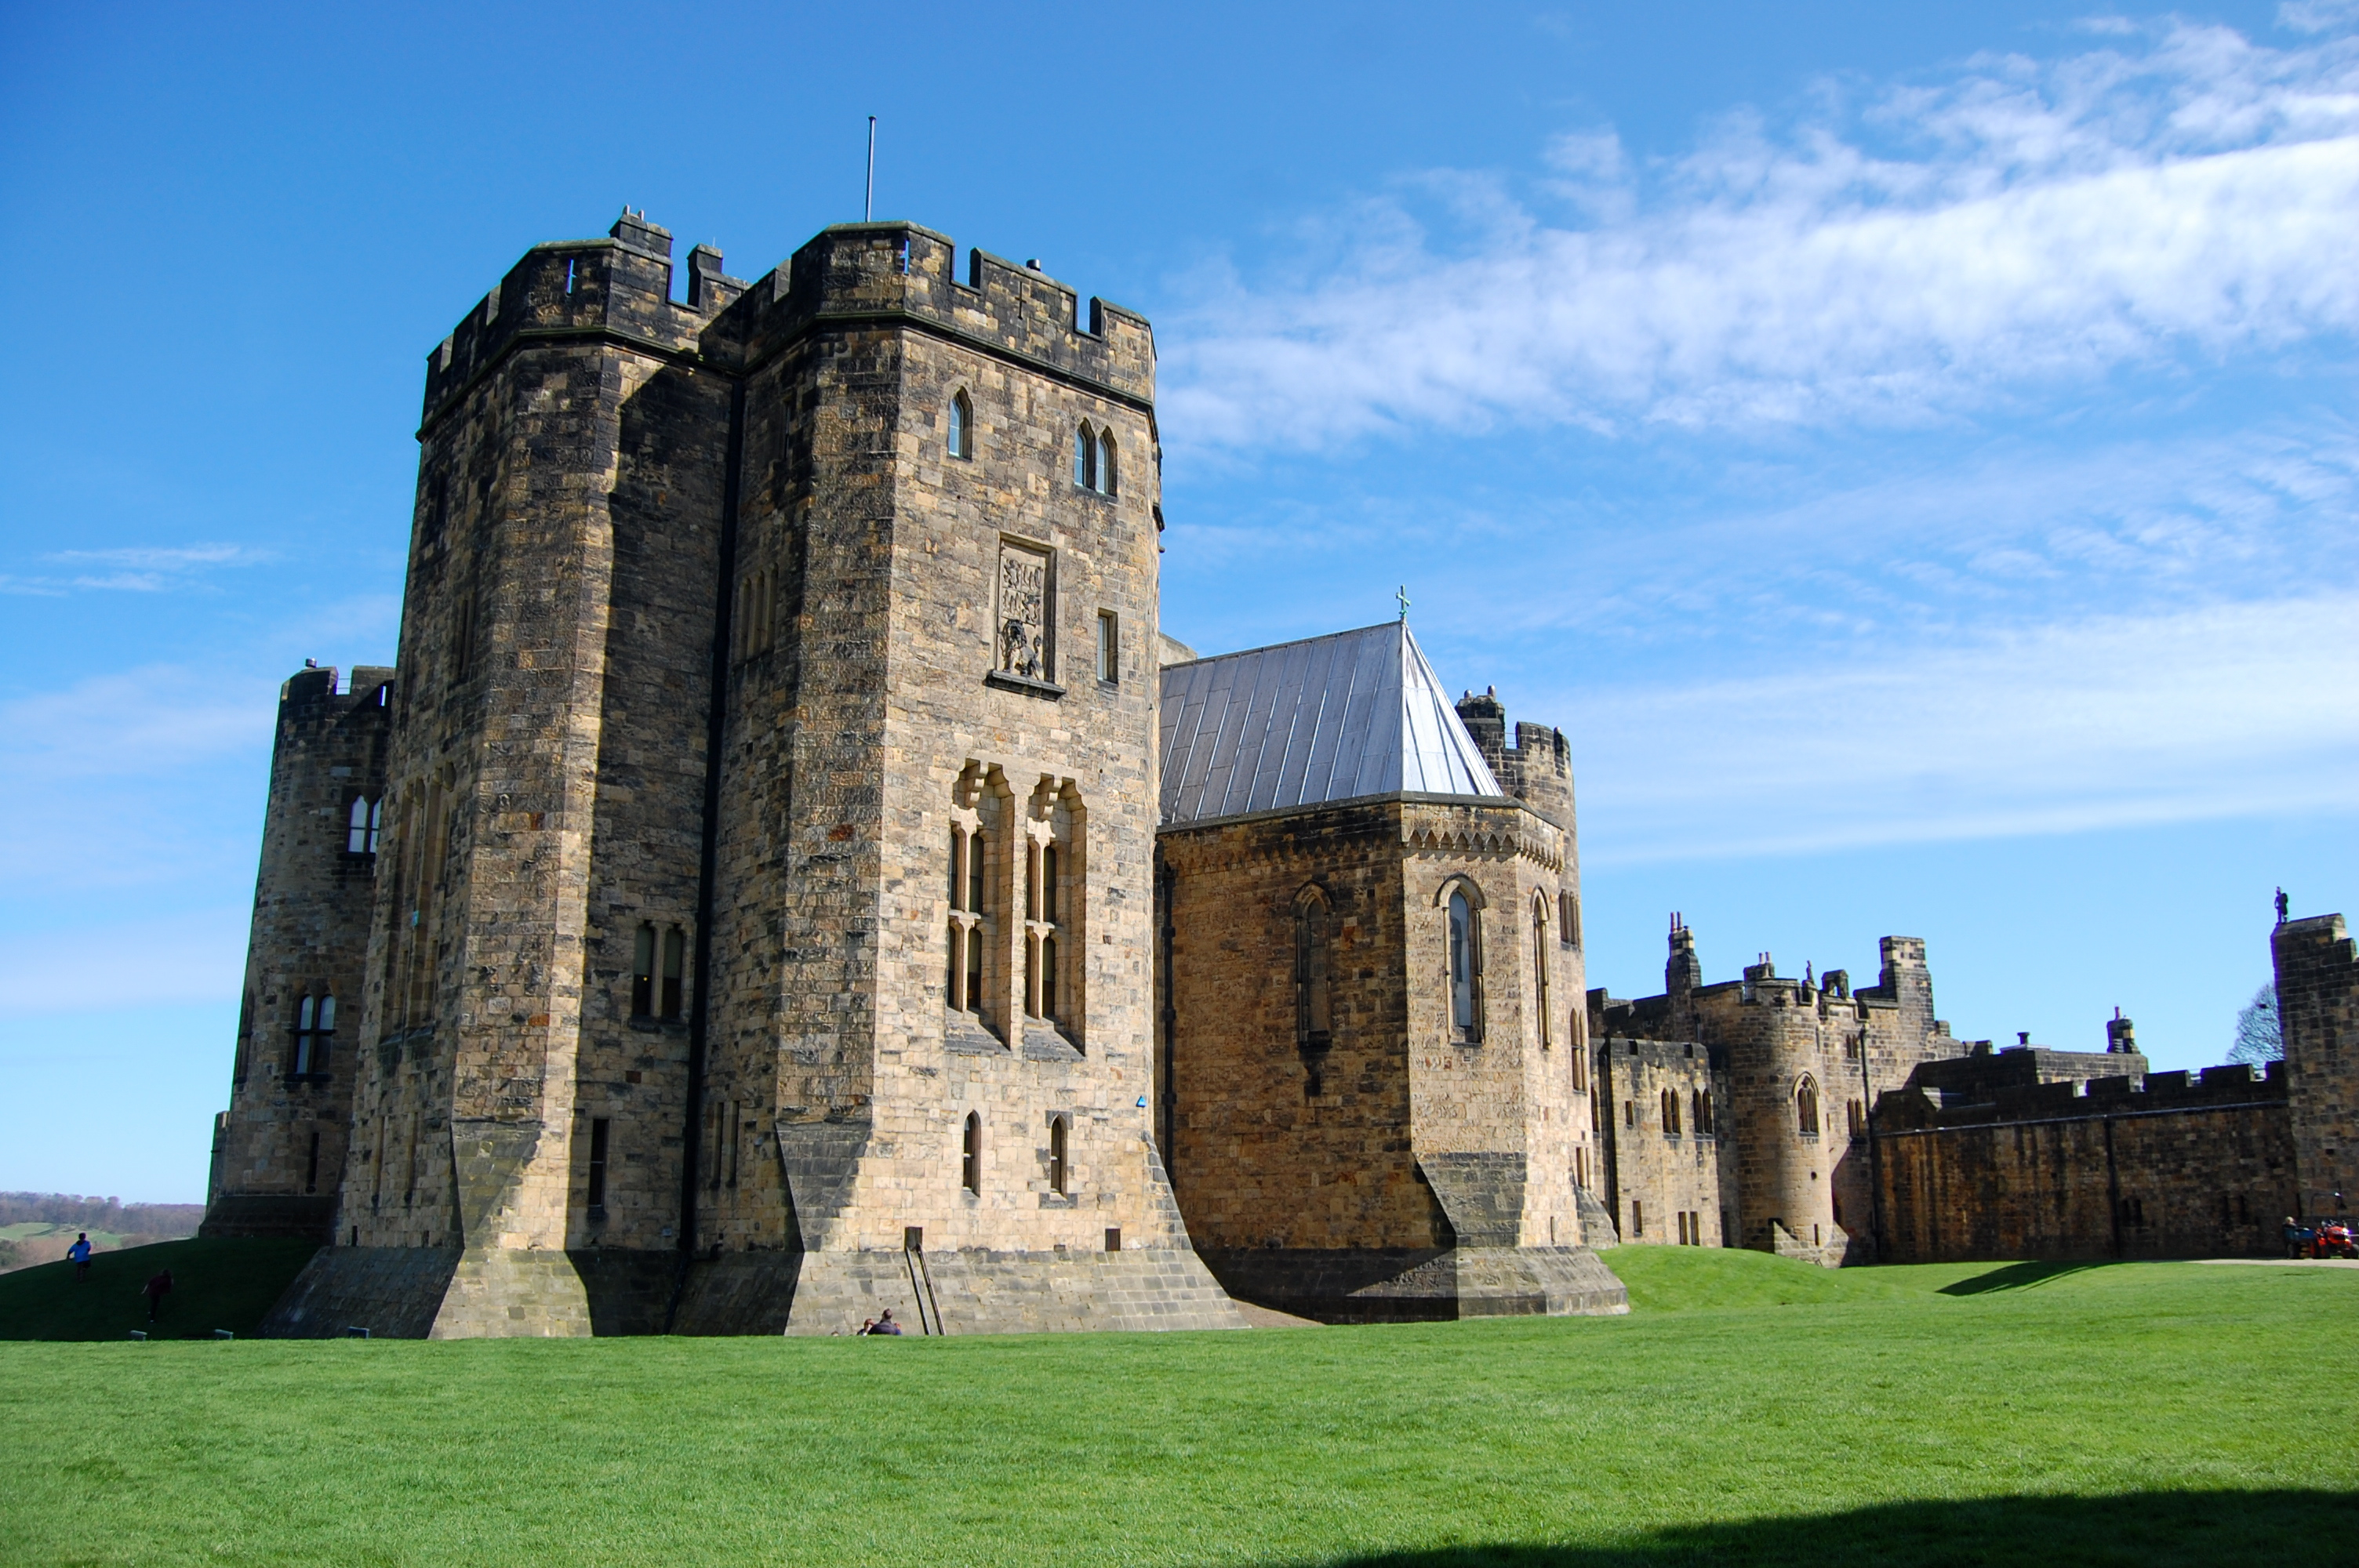 Alnwick Castle - Wikipedia, the free encyclopedia